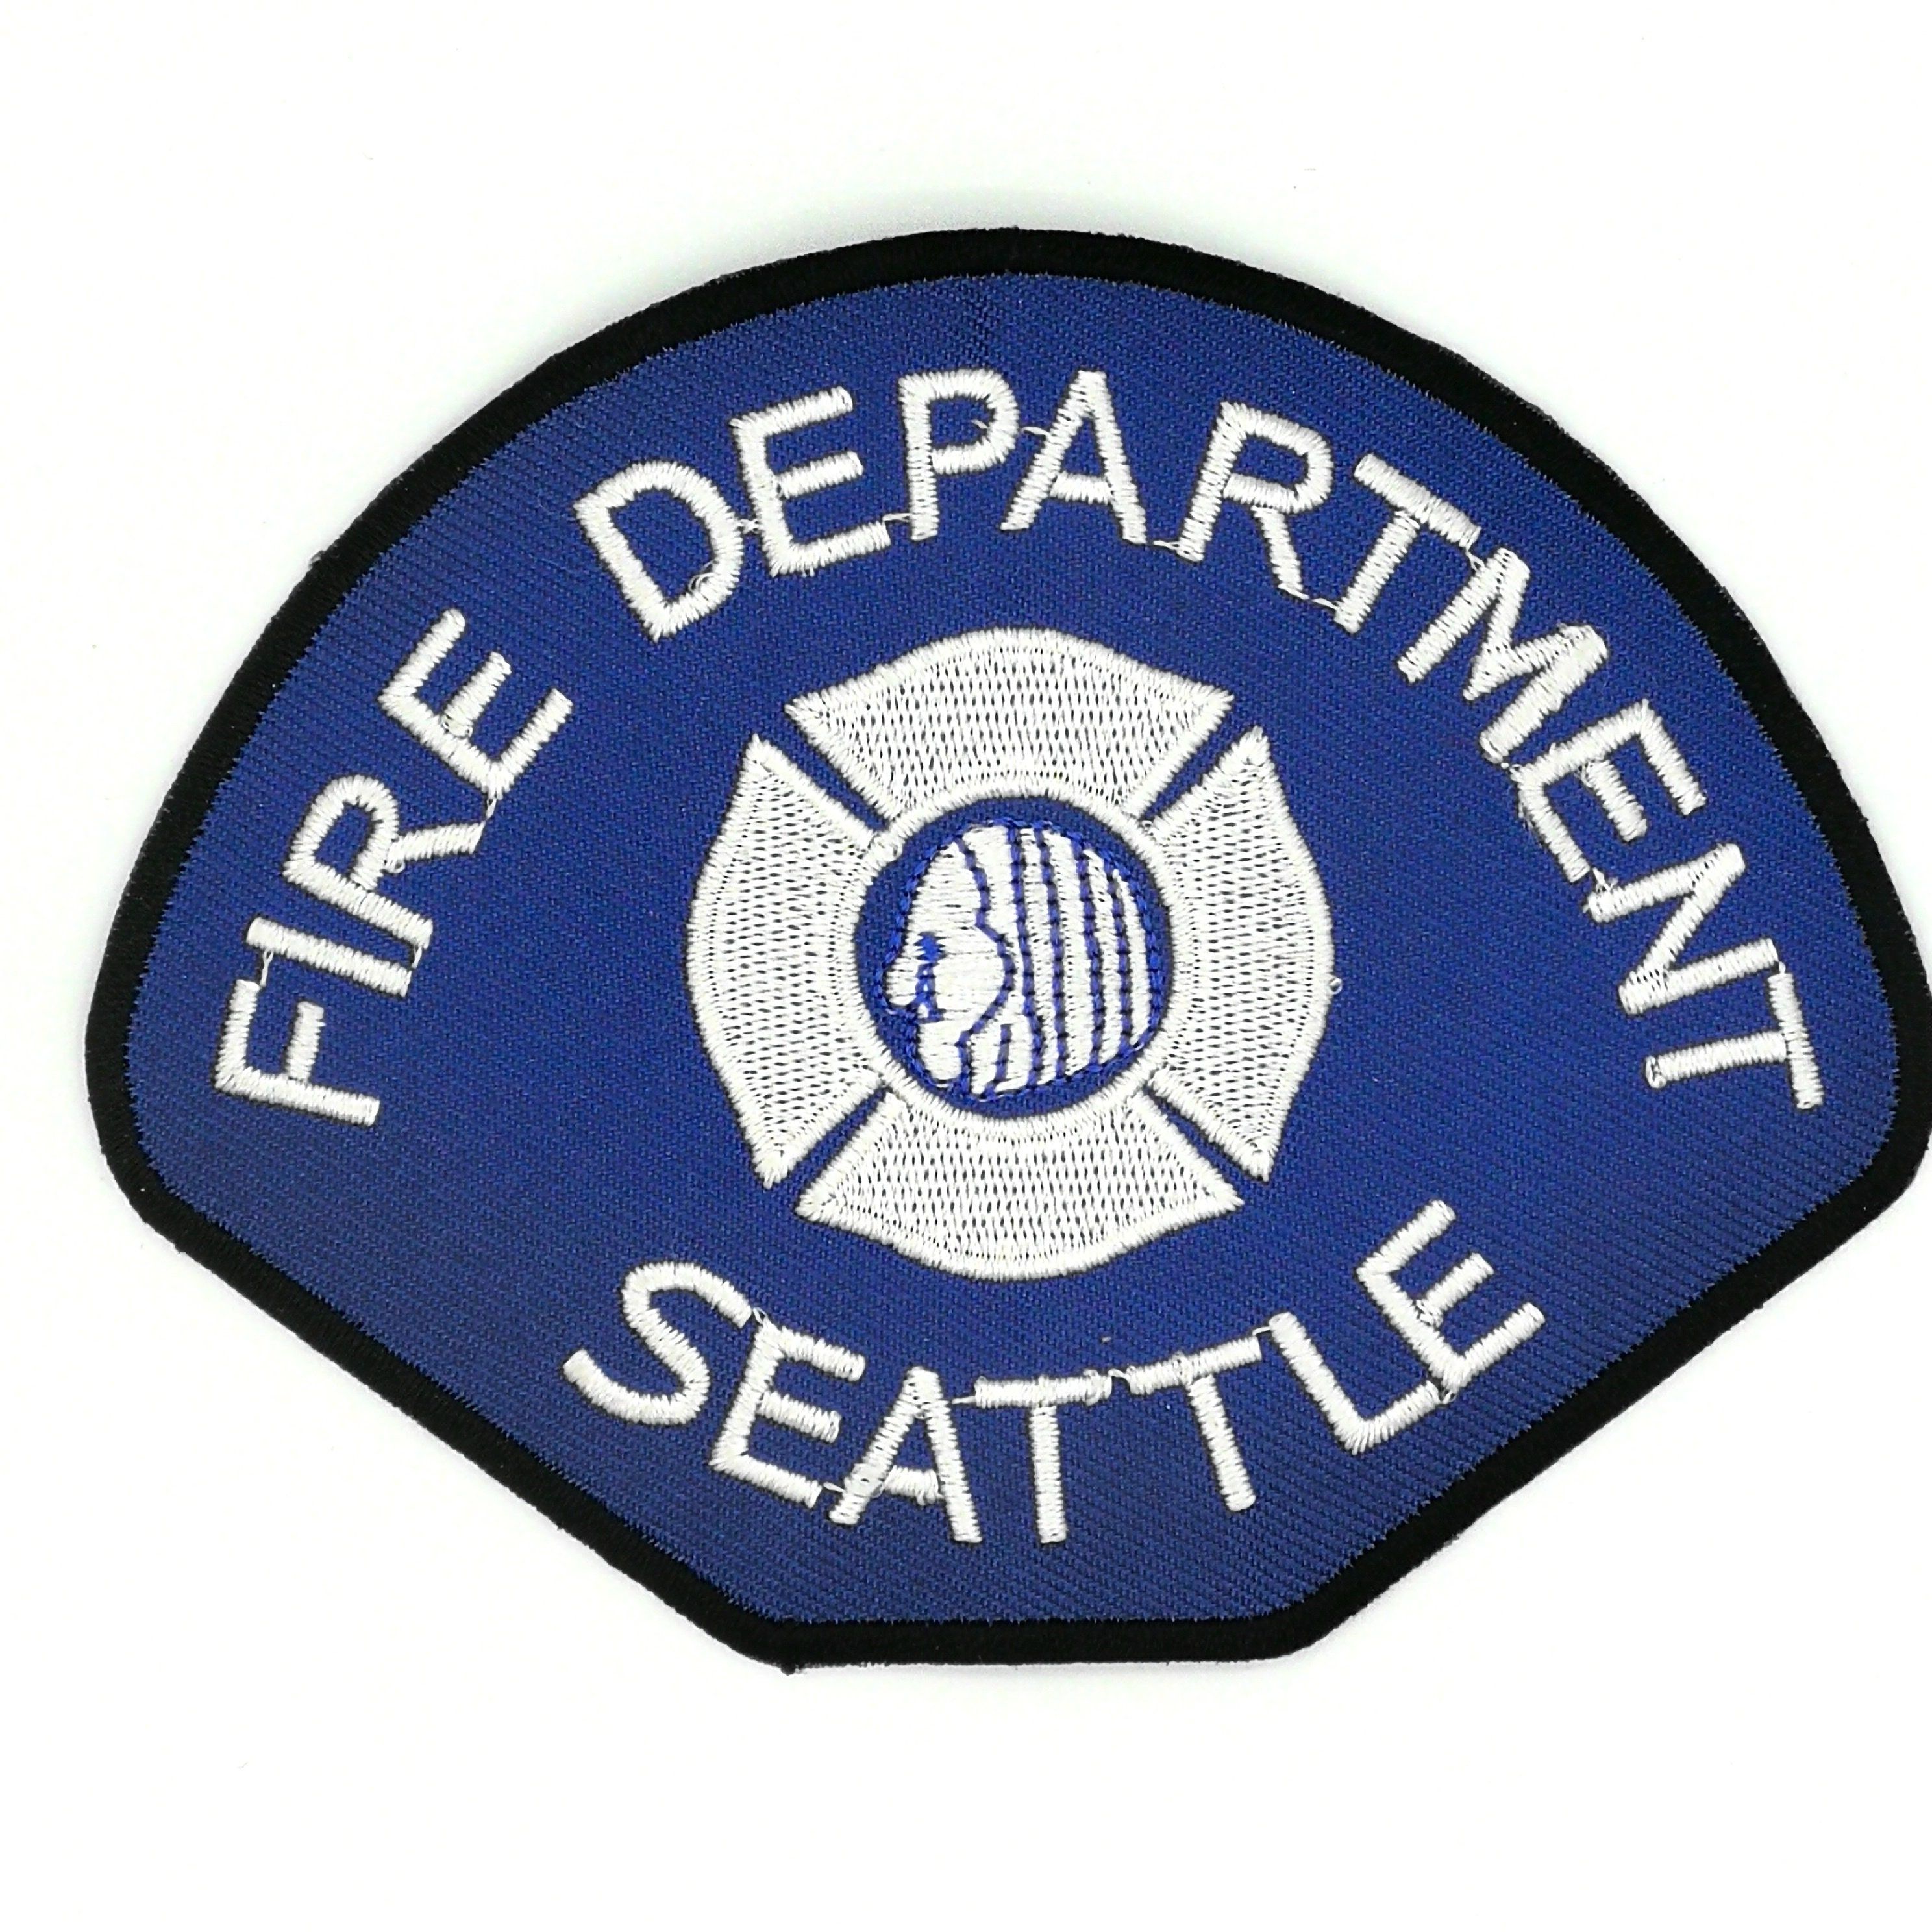 Seattle Fire Department Patch Iron On Patches Embroidered Jpg 2976x2976